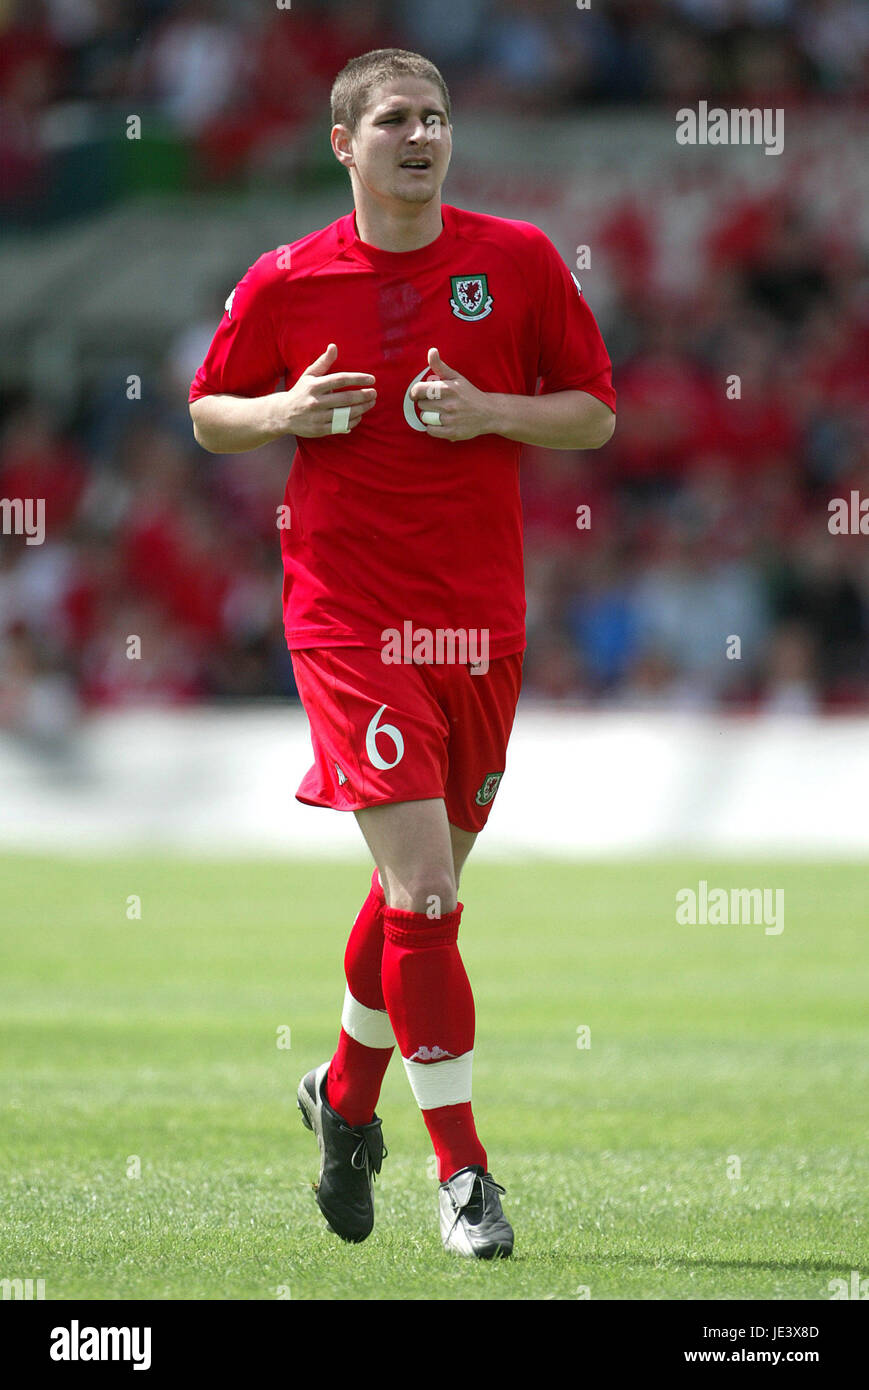 CARL ROBINSON WALES & PORTSMOUTH FC RACECOURSE FROUND WREXHAM WALES 30 May 2004 - Stock Image